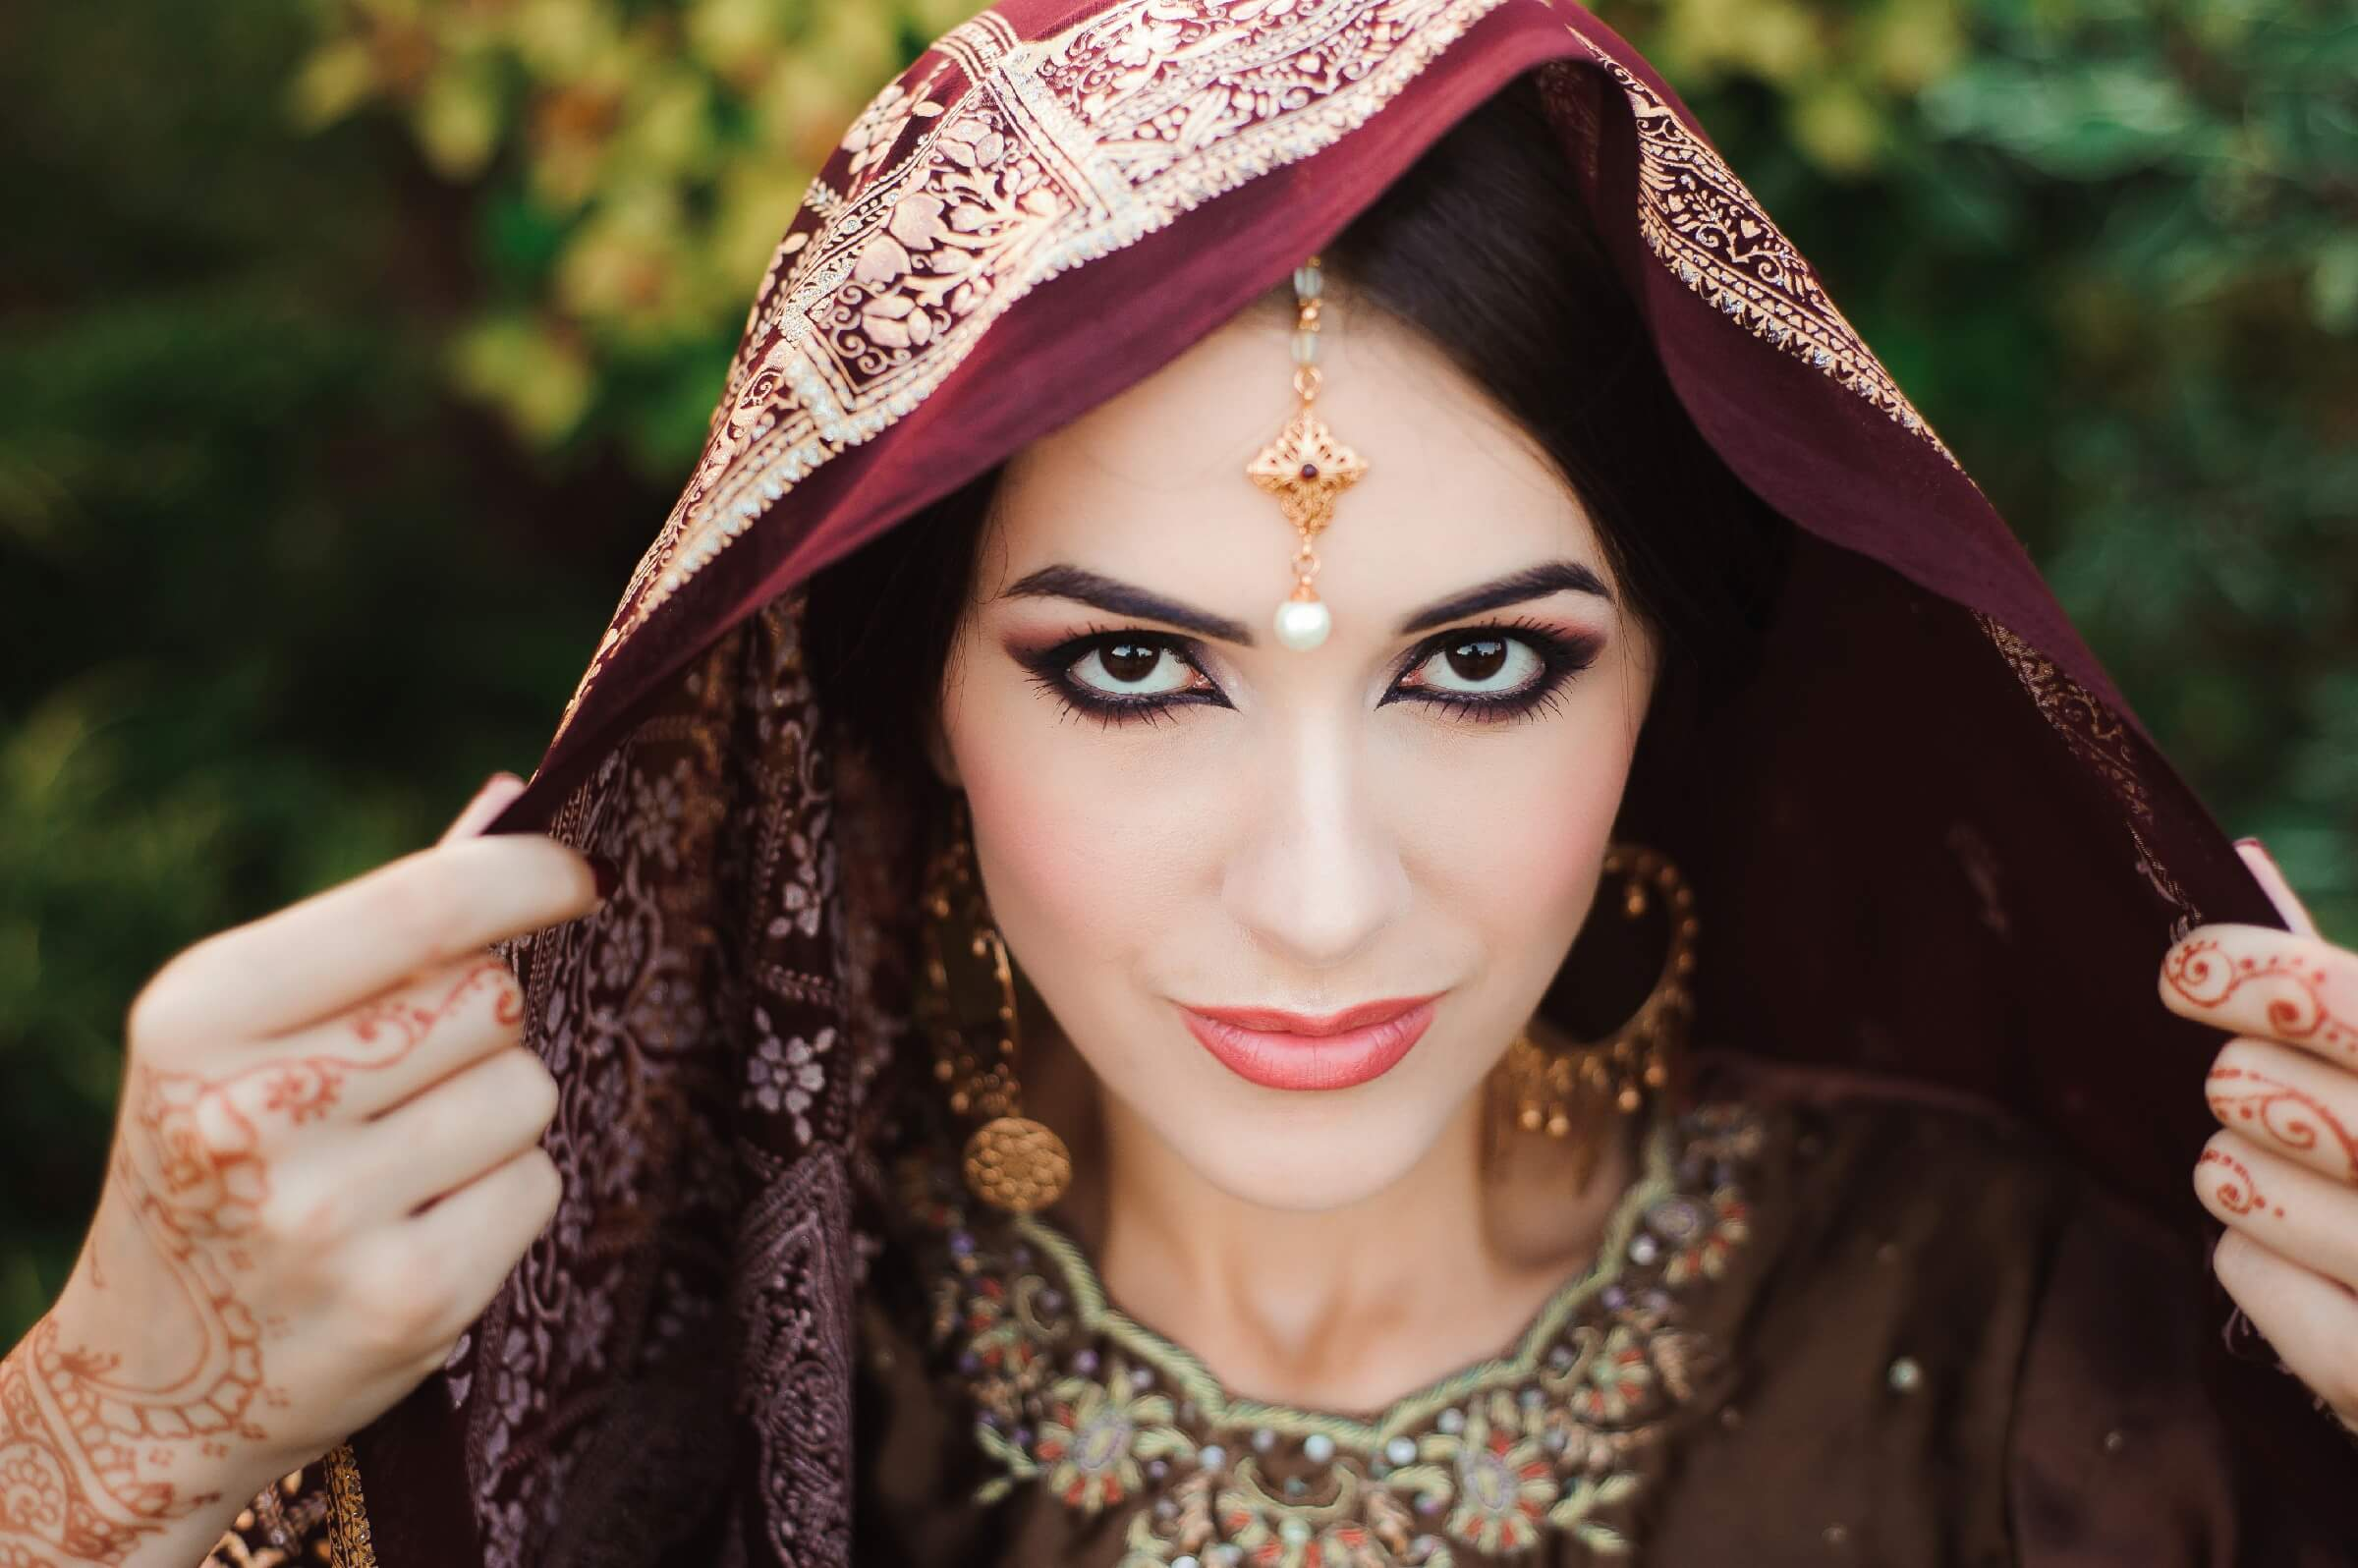 Donning the bold Indian bridal makeup look